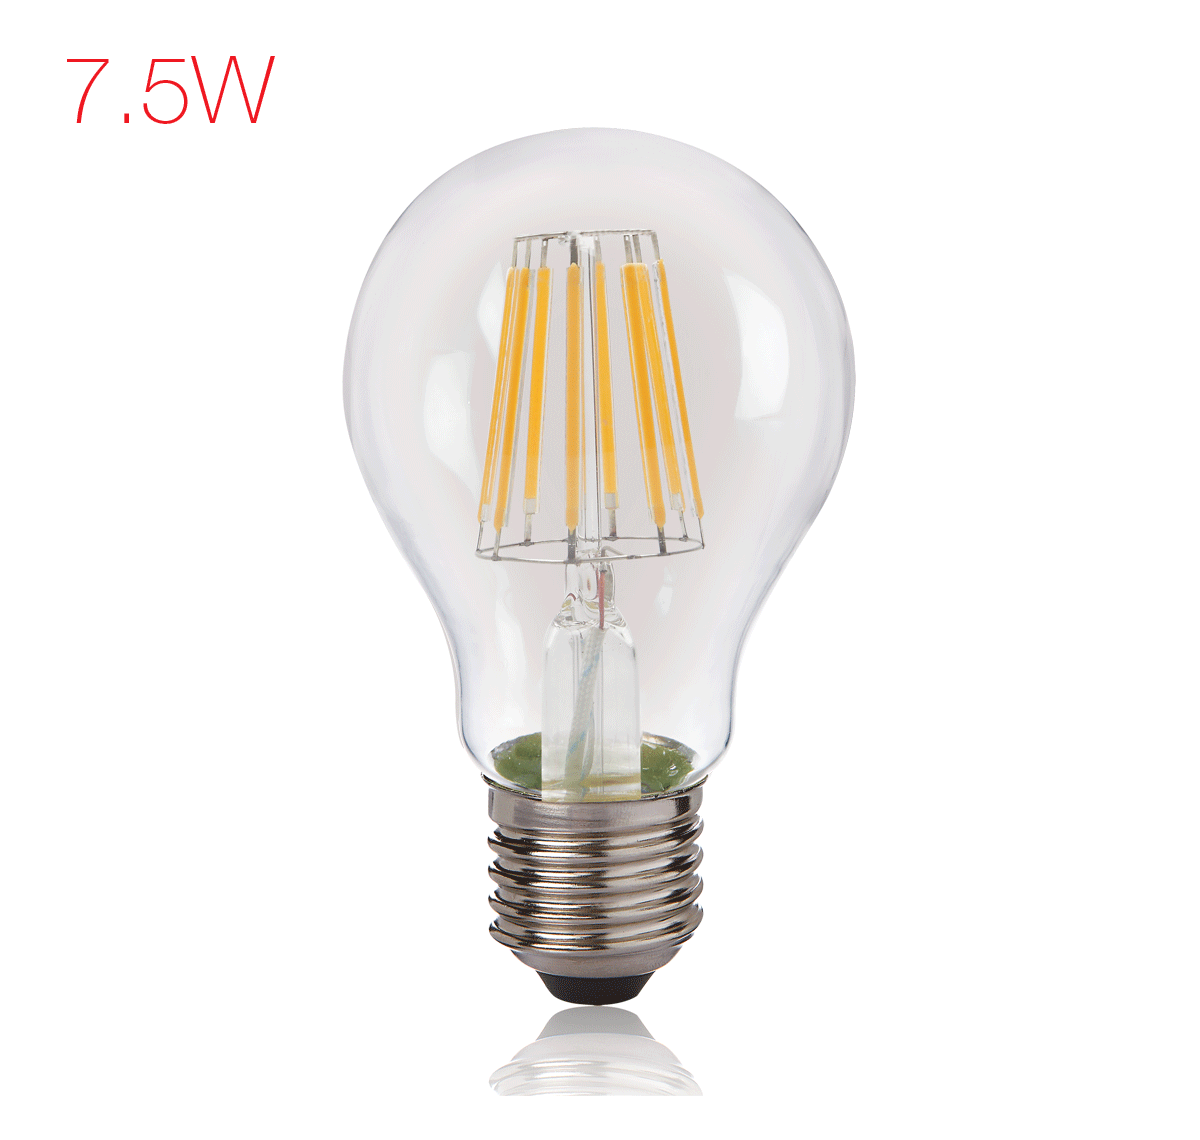 BrightFill LED Filament A60 - 7.5 W